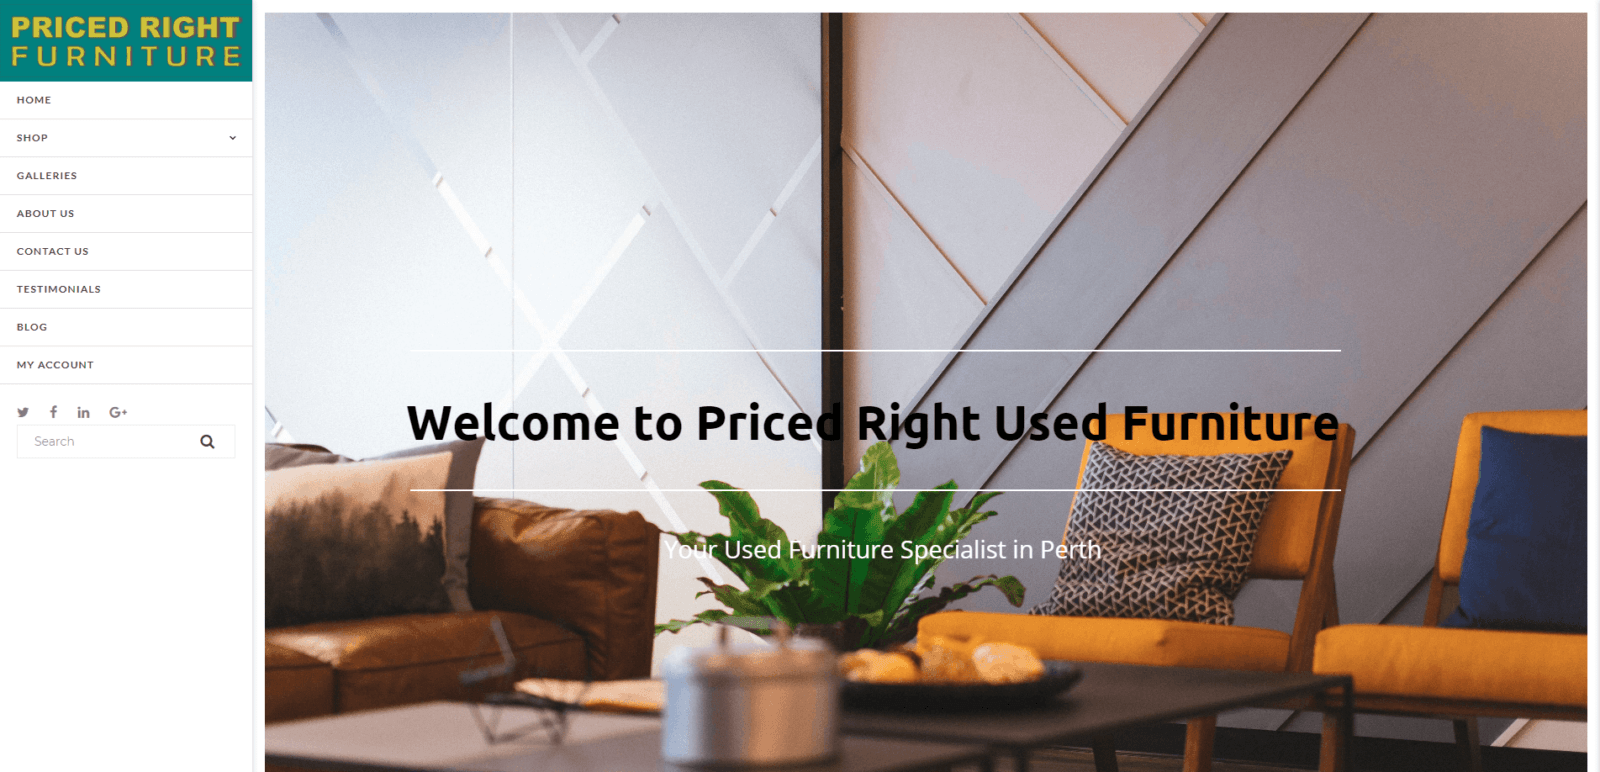 Priced Right Furniture